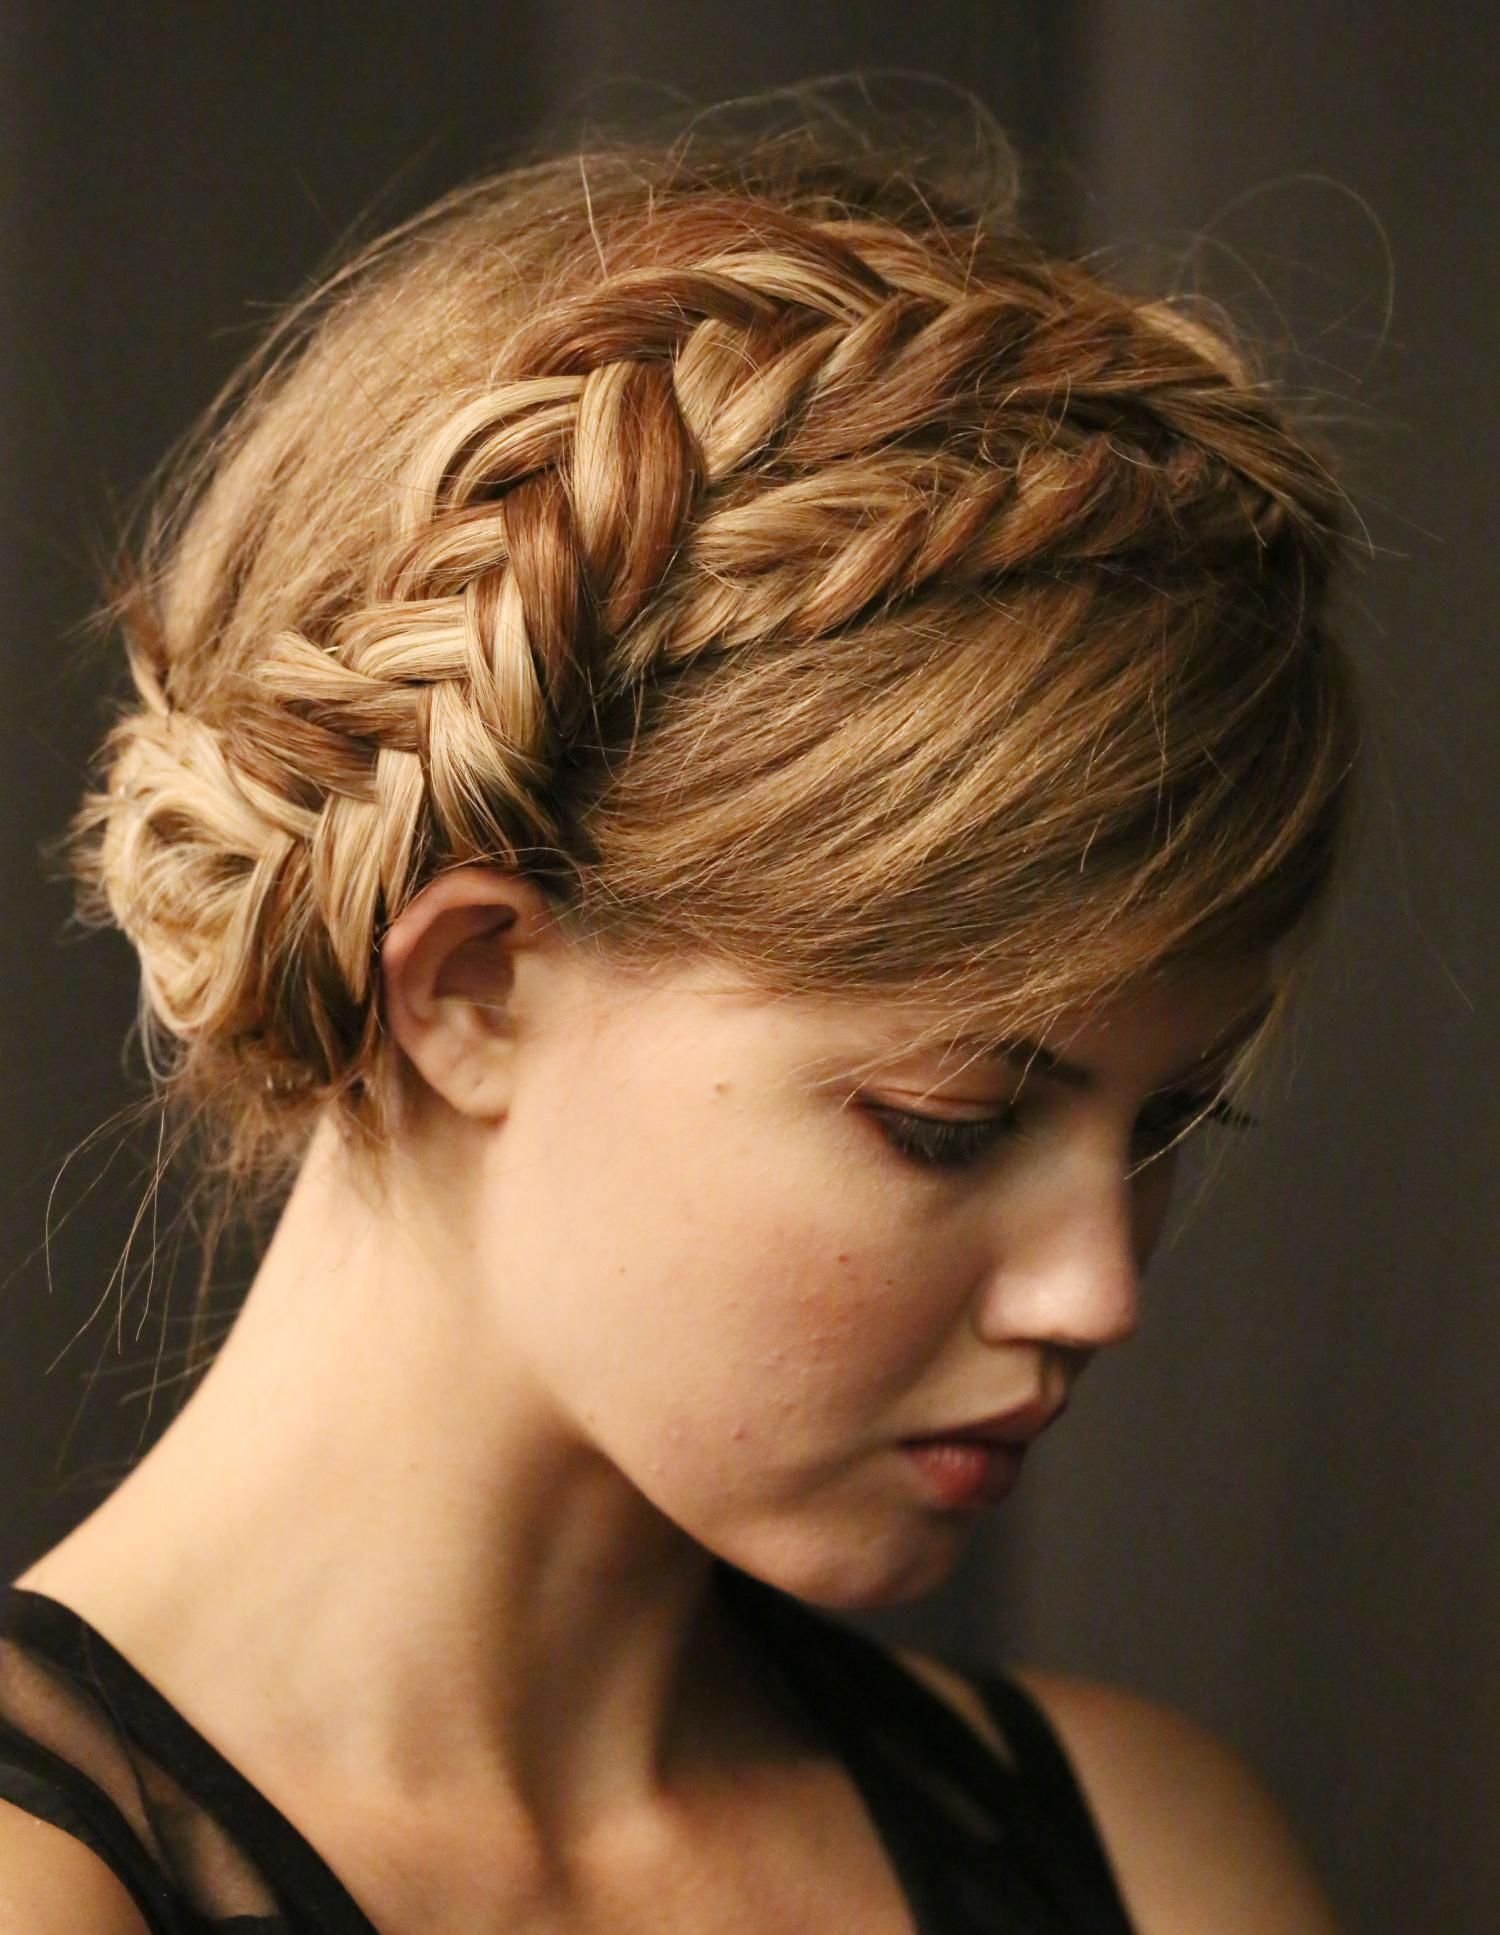 Hair How-To: Rebecca Minkoff's Beautiful Braids at NYFW